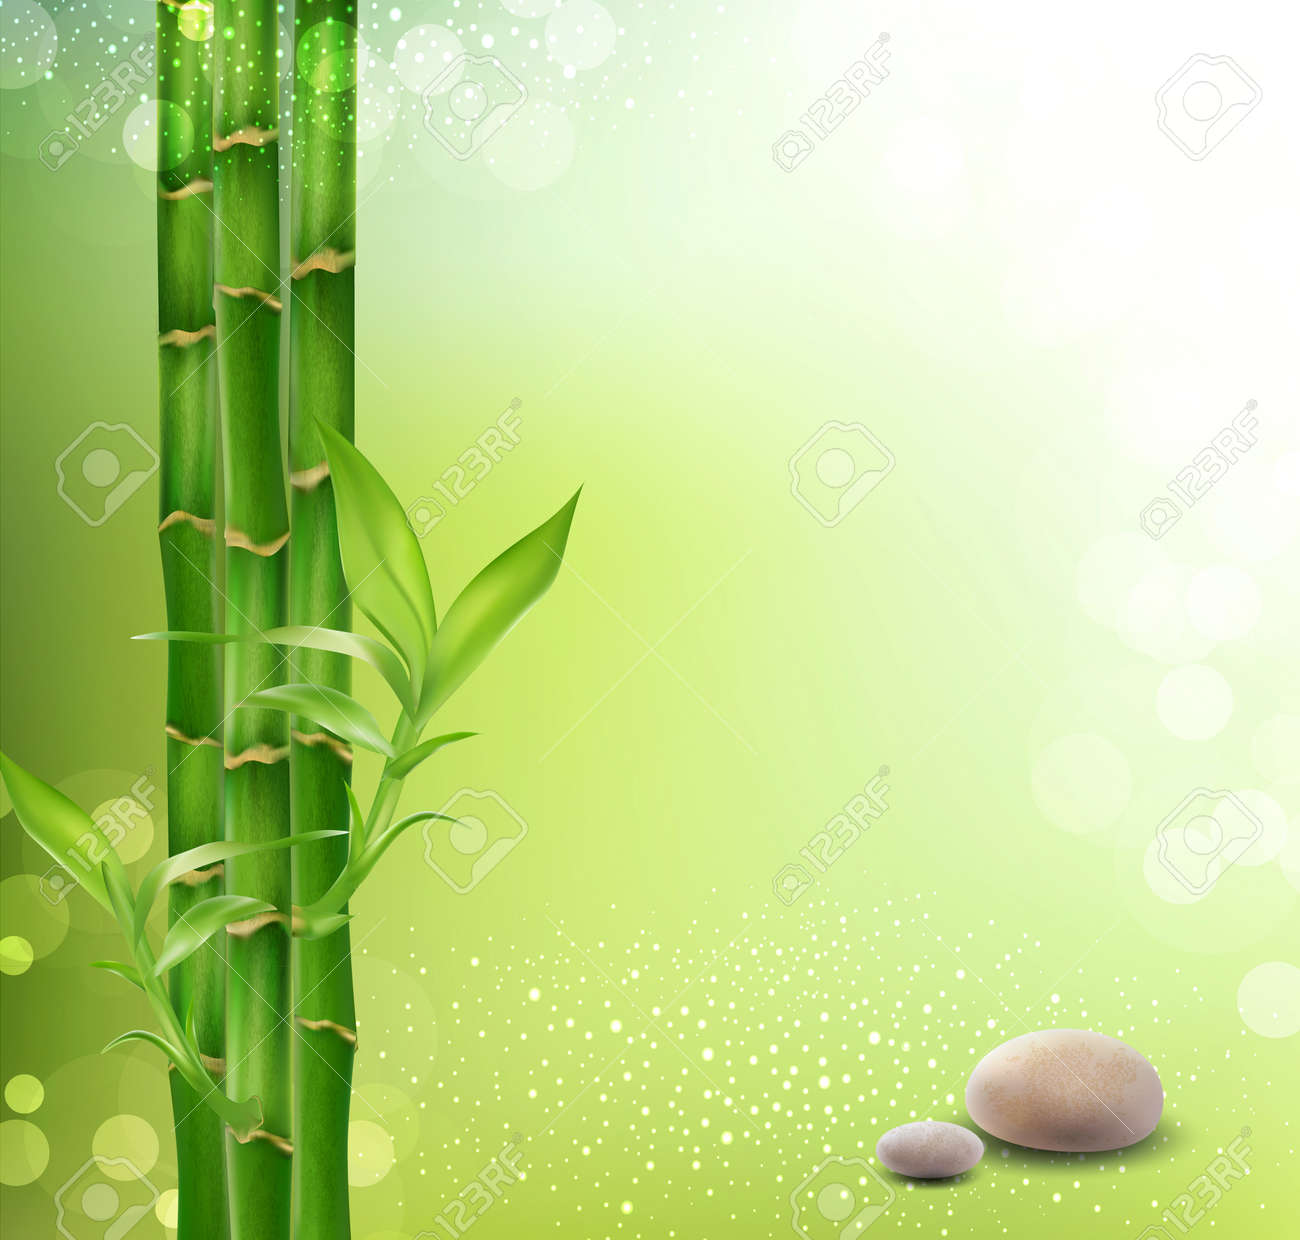 meditative, oriental background with bamboo and stones Stock Vector - 12866886